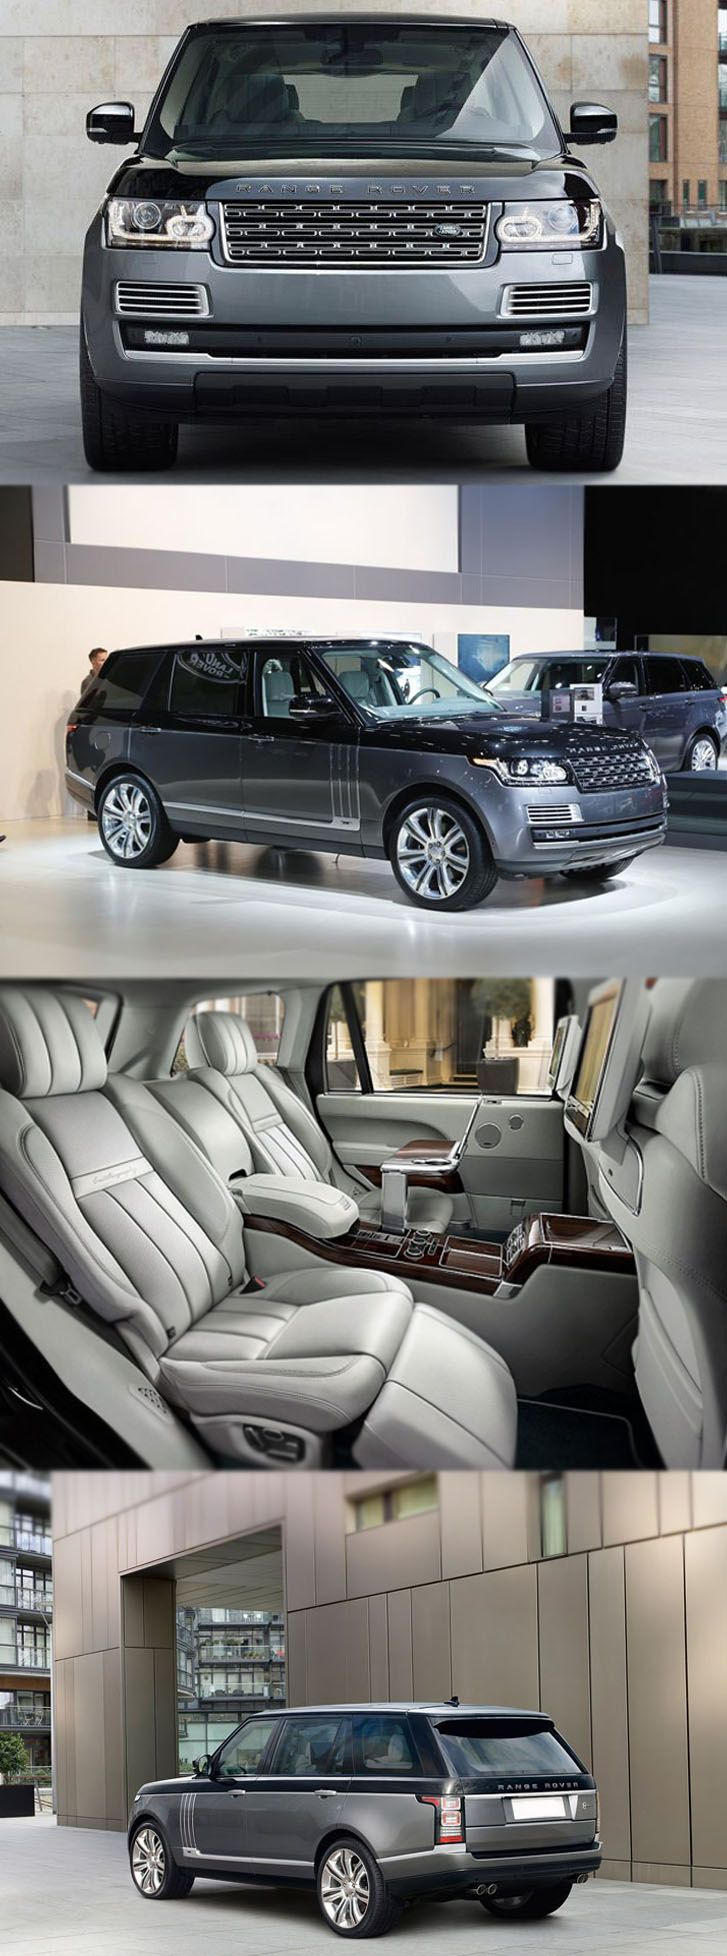 A review of the luxurious range rover for more detial http